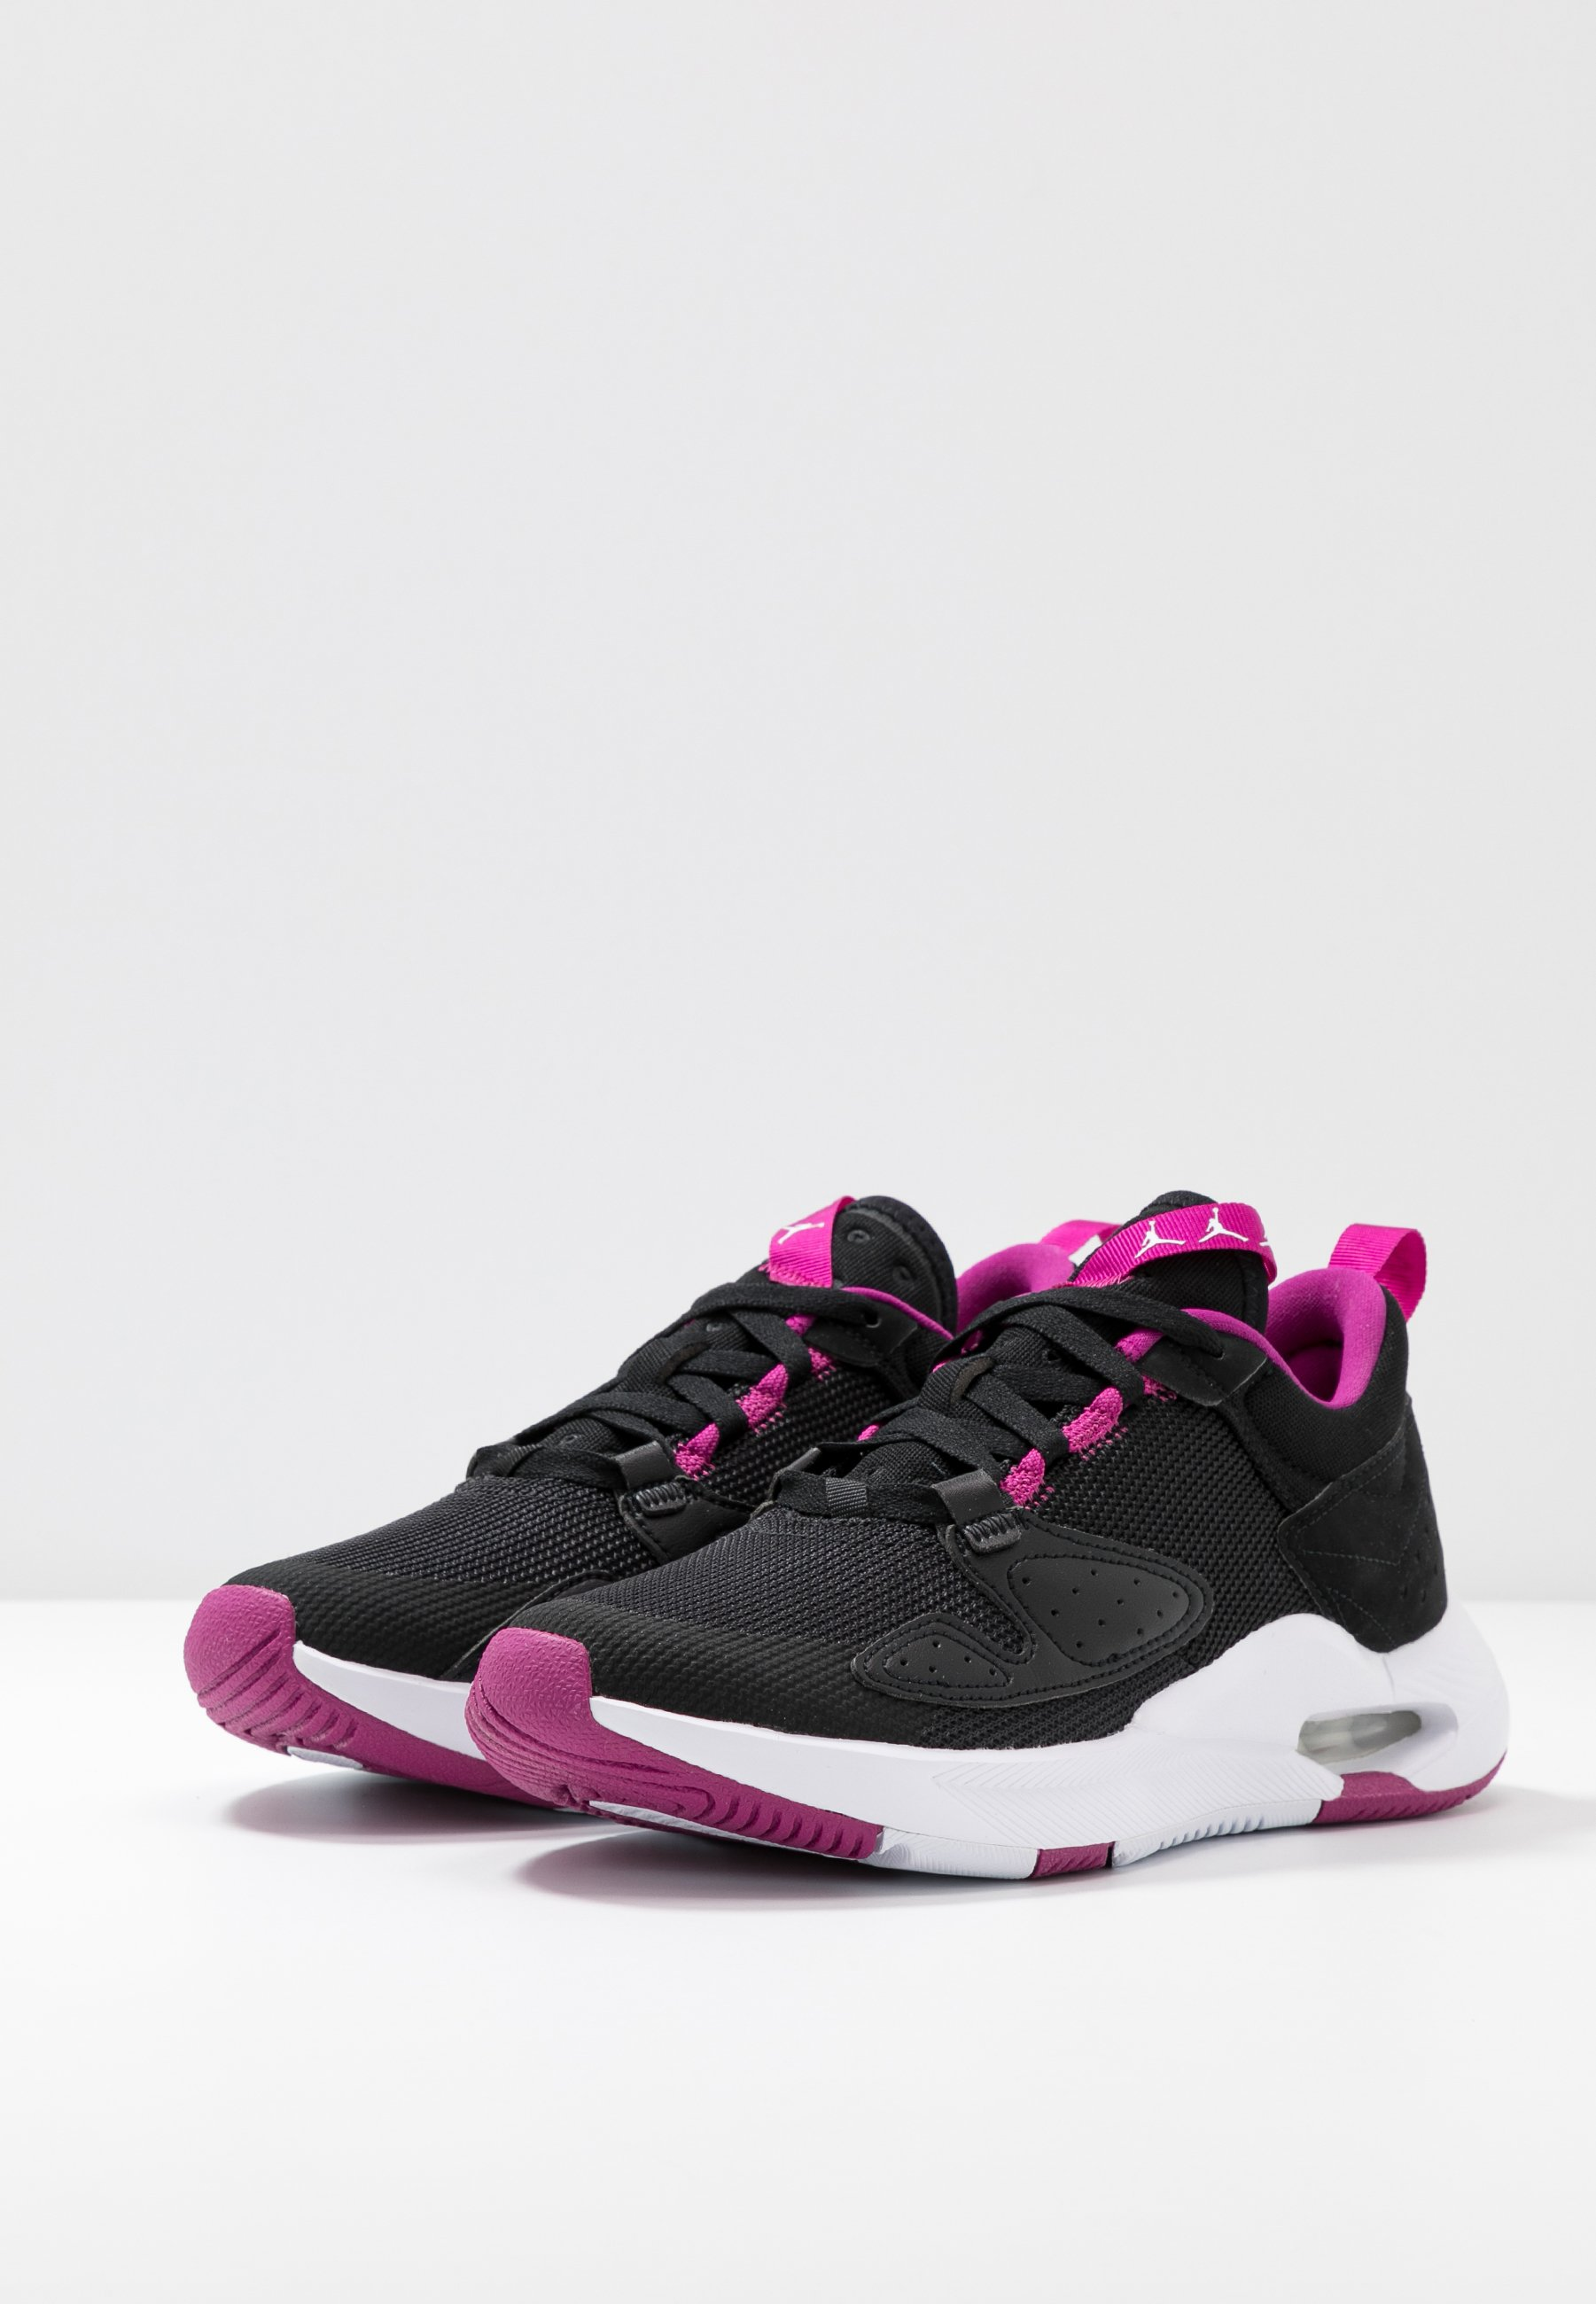 Jordan JORDAN AIR CADENCE Sneaker low black/white/cactus flower/schwarz